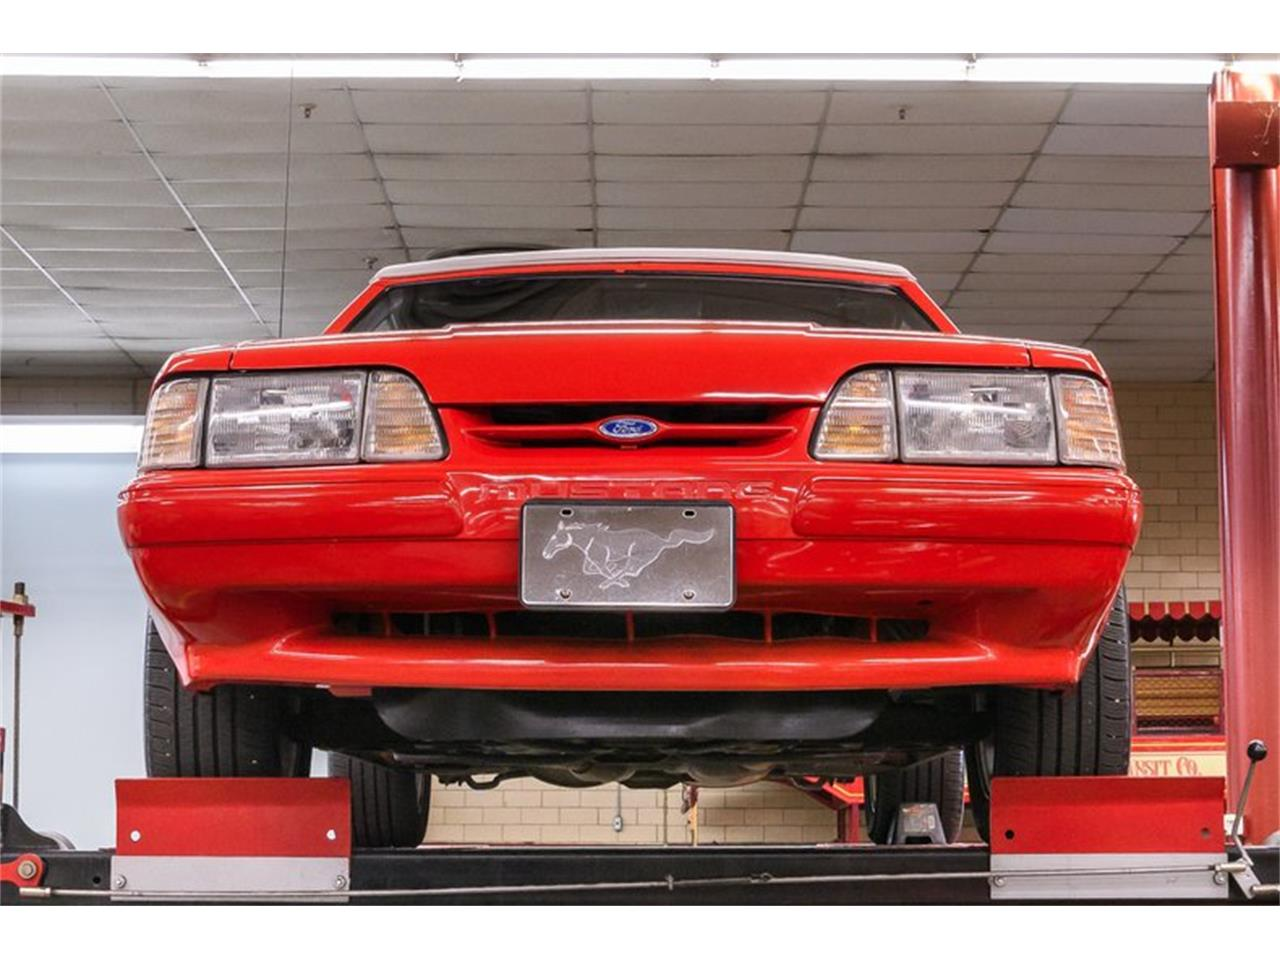 Large Picture of '92 Mustang located in North Carolina - $21,995.00 - Q56V